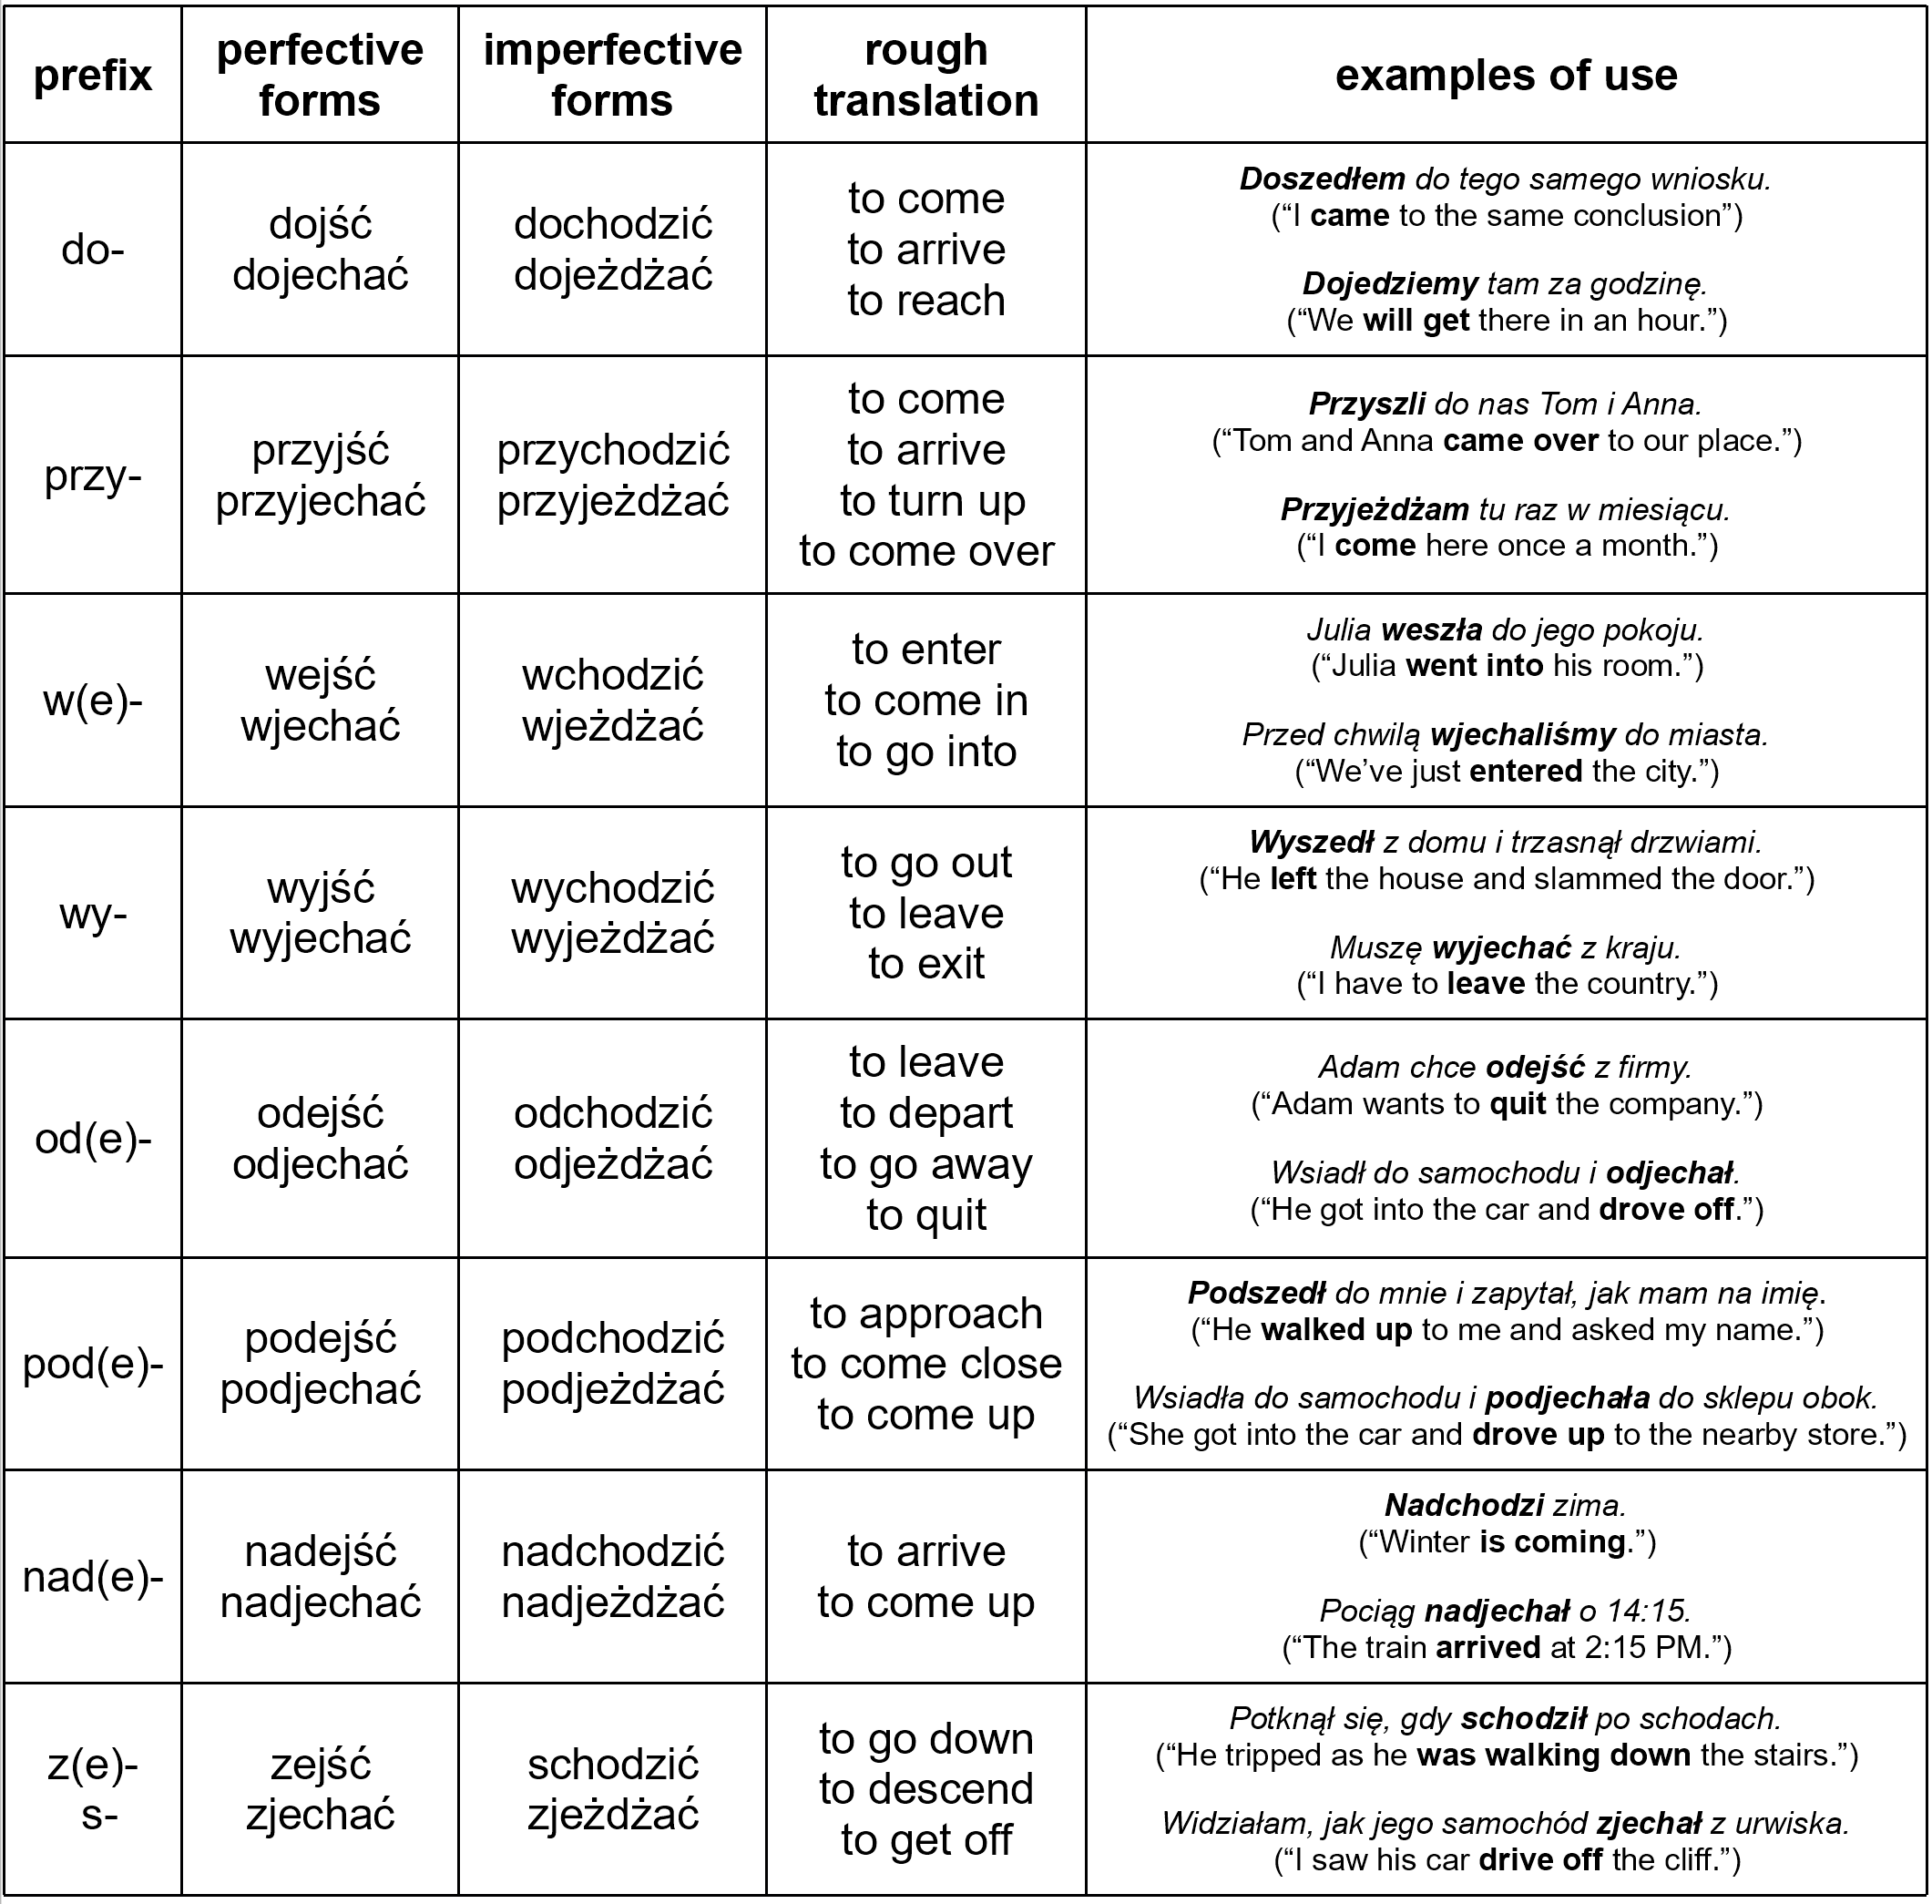 Polish Verbs Of Motion I Jecha And Other Related